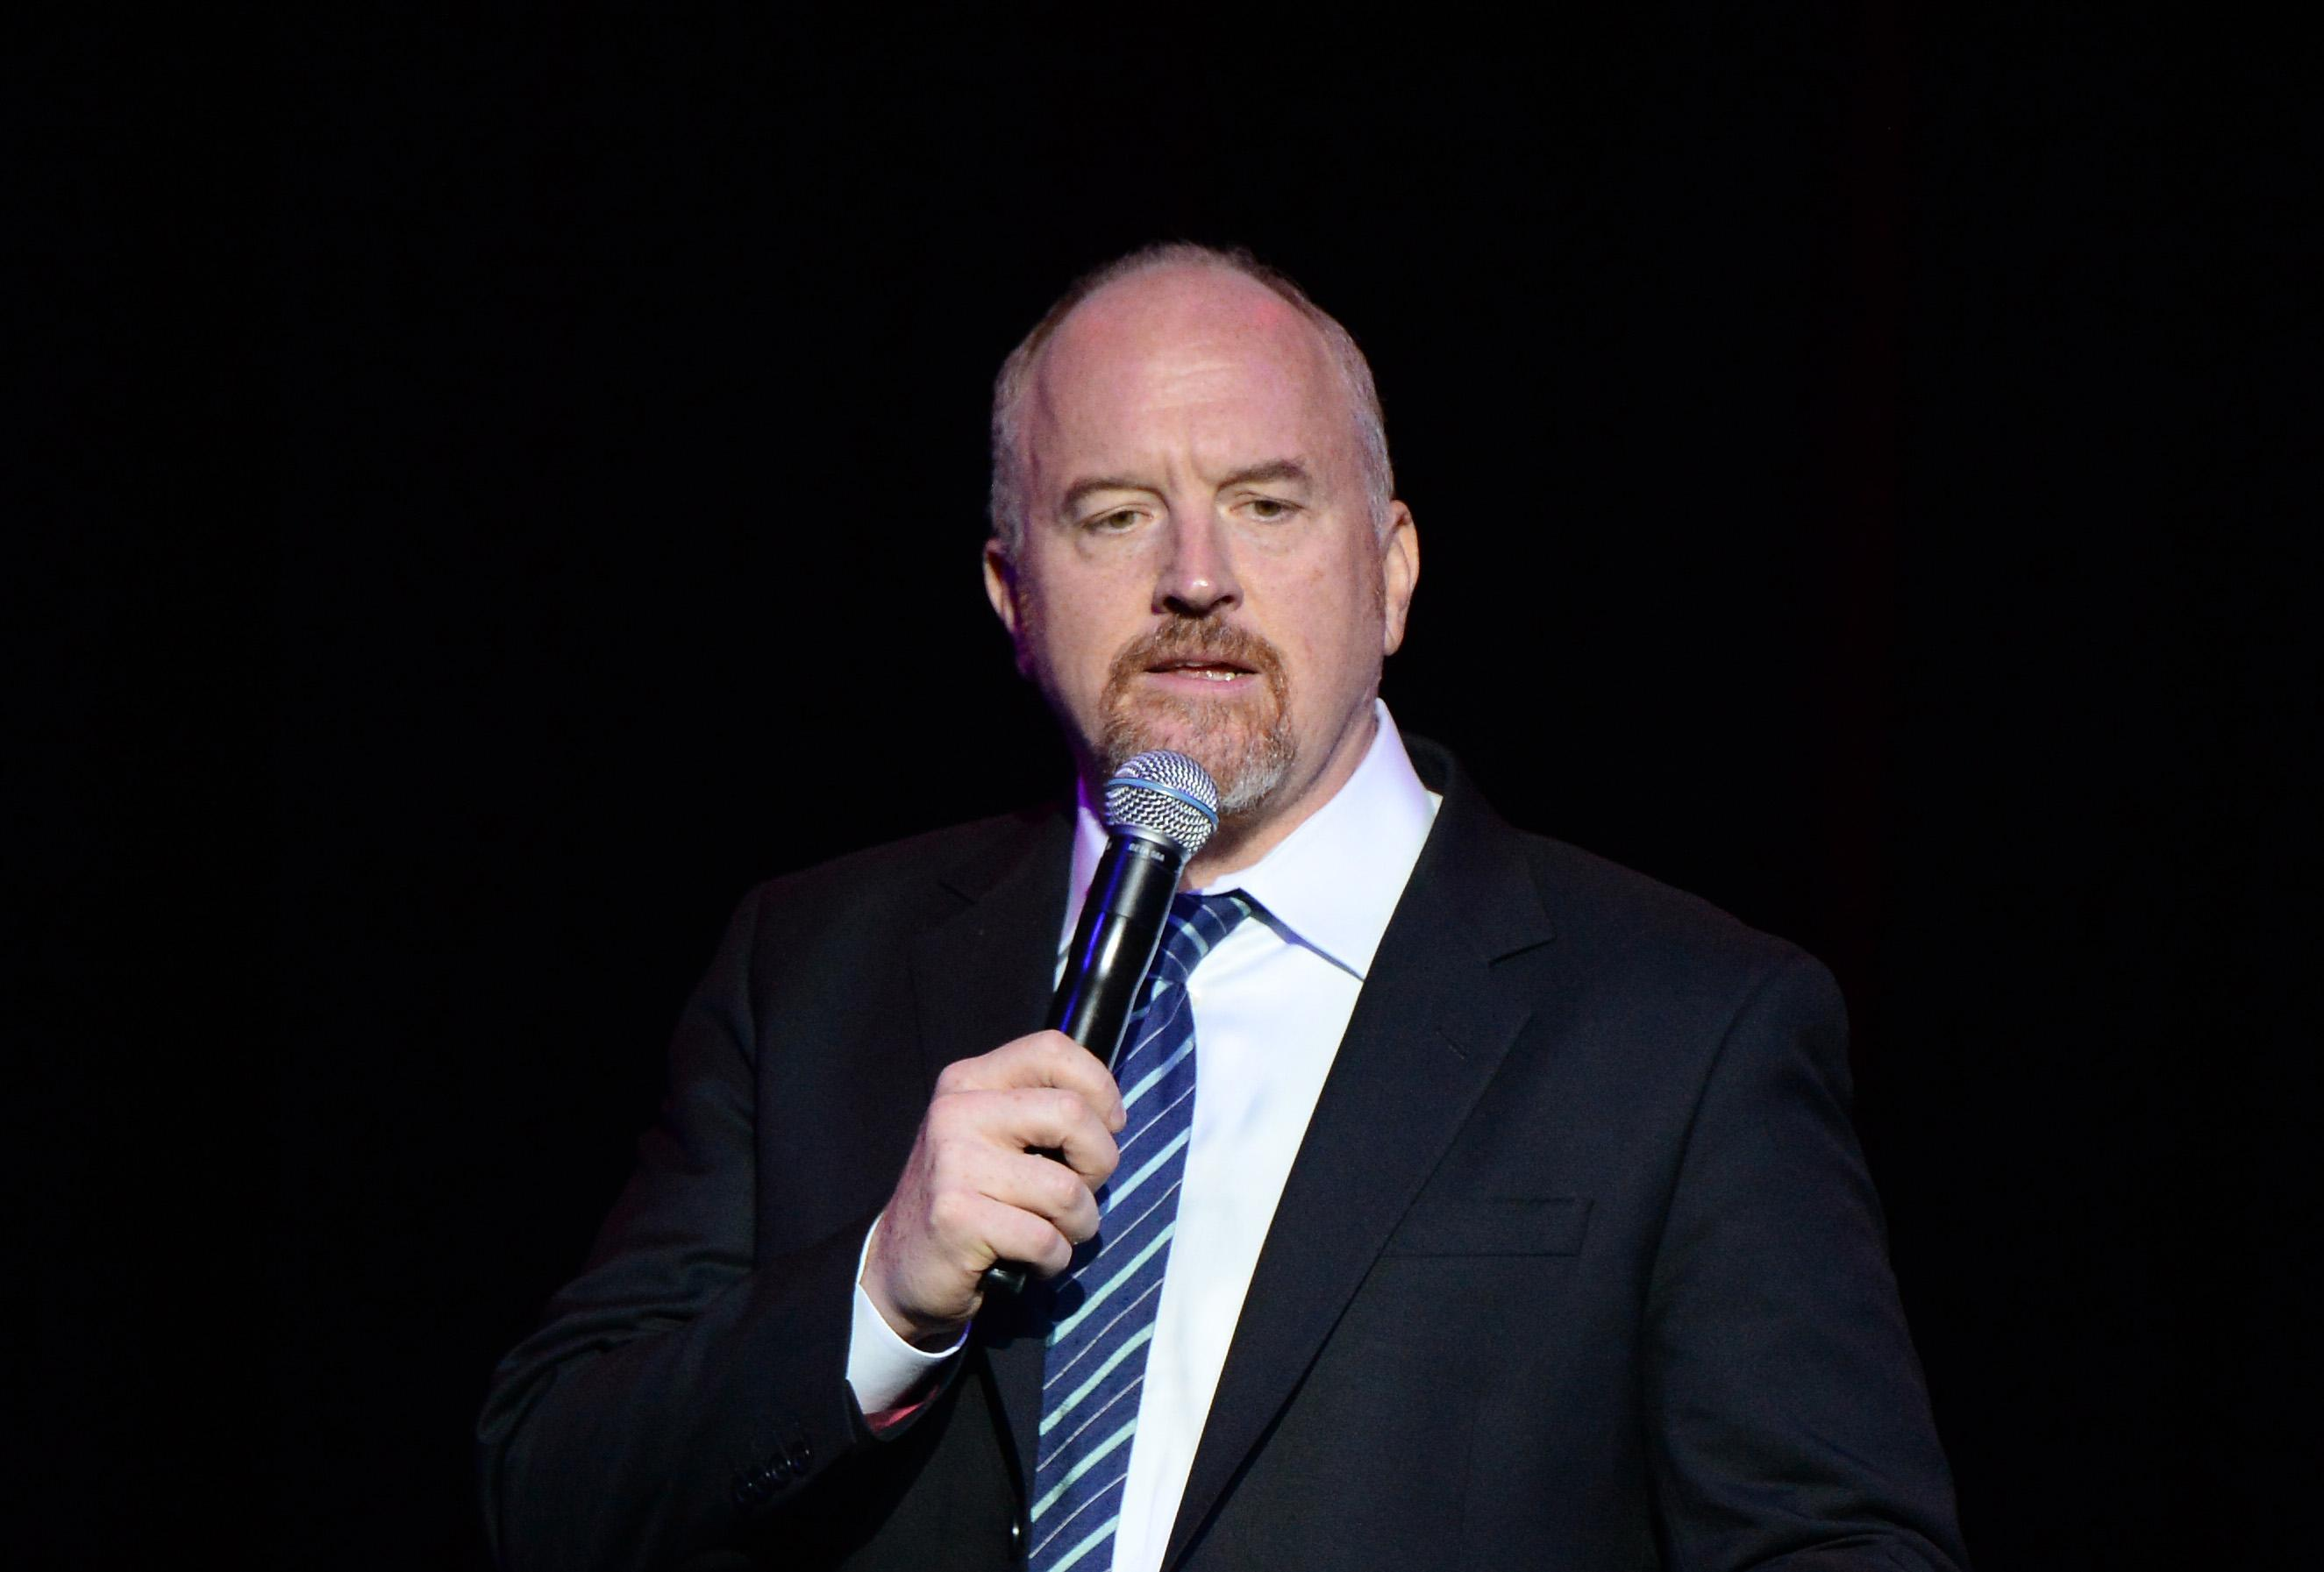 Comedian Louis CK accused of sexual misconduct by five women